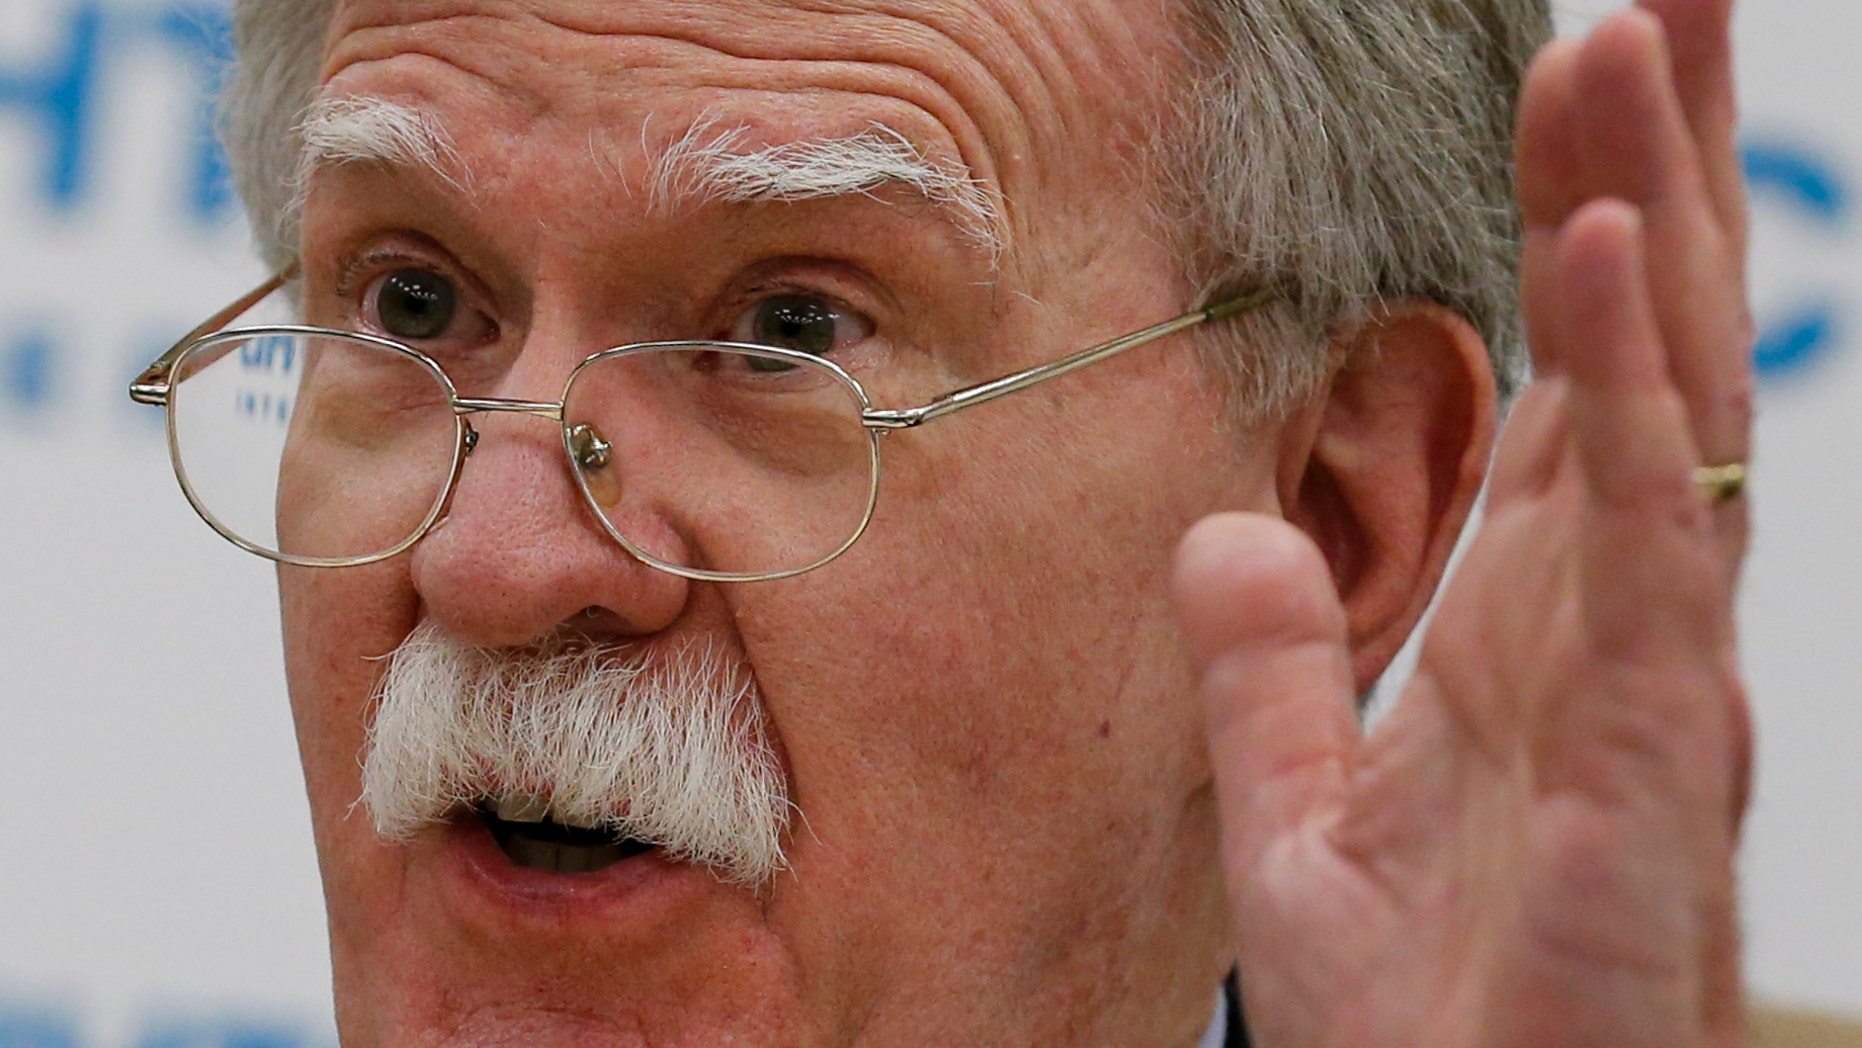 U.S. National security adviser John Bolton gestures as he speaks to the media after his talks with Russian President Vladimir Putin in Moscow, Russia, Tuesday, Oct. 23, 2018. Bolton said that Russia has hurt itself by meddling in the U.S. elections, effectively blocking the prospects for improving U.S.-Russia ties. (AP Photo/Alexander Zemlianichenko)